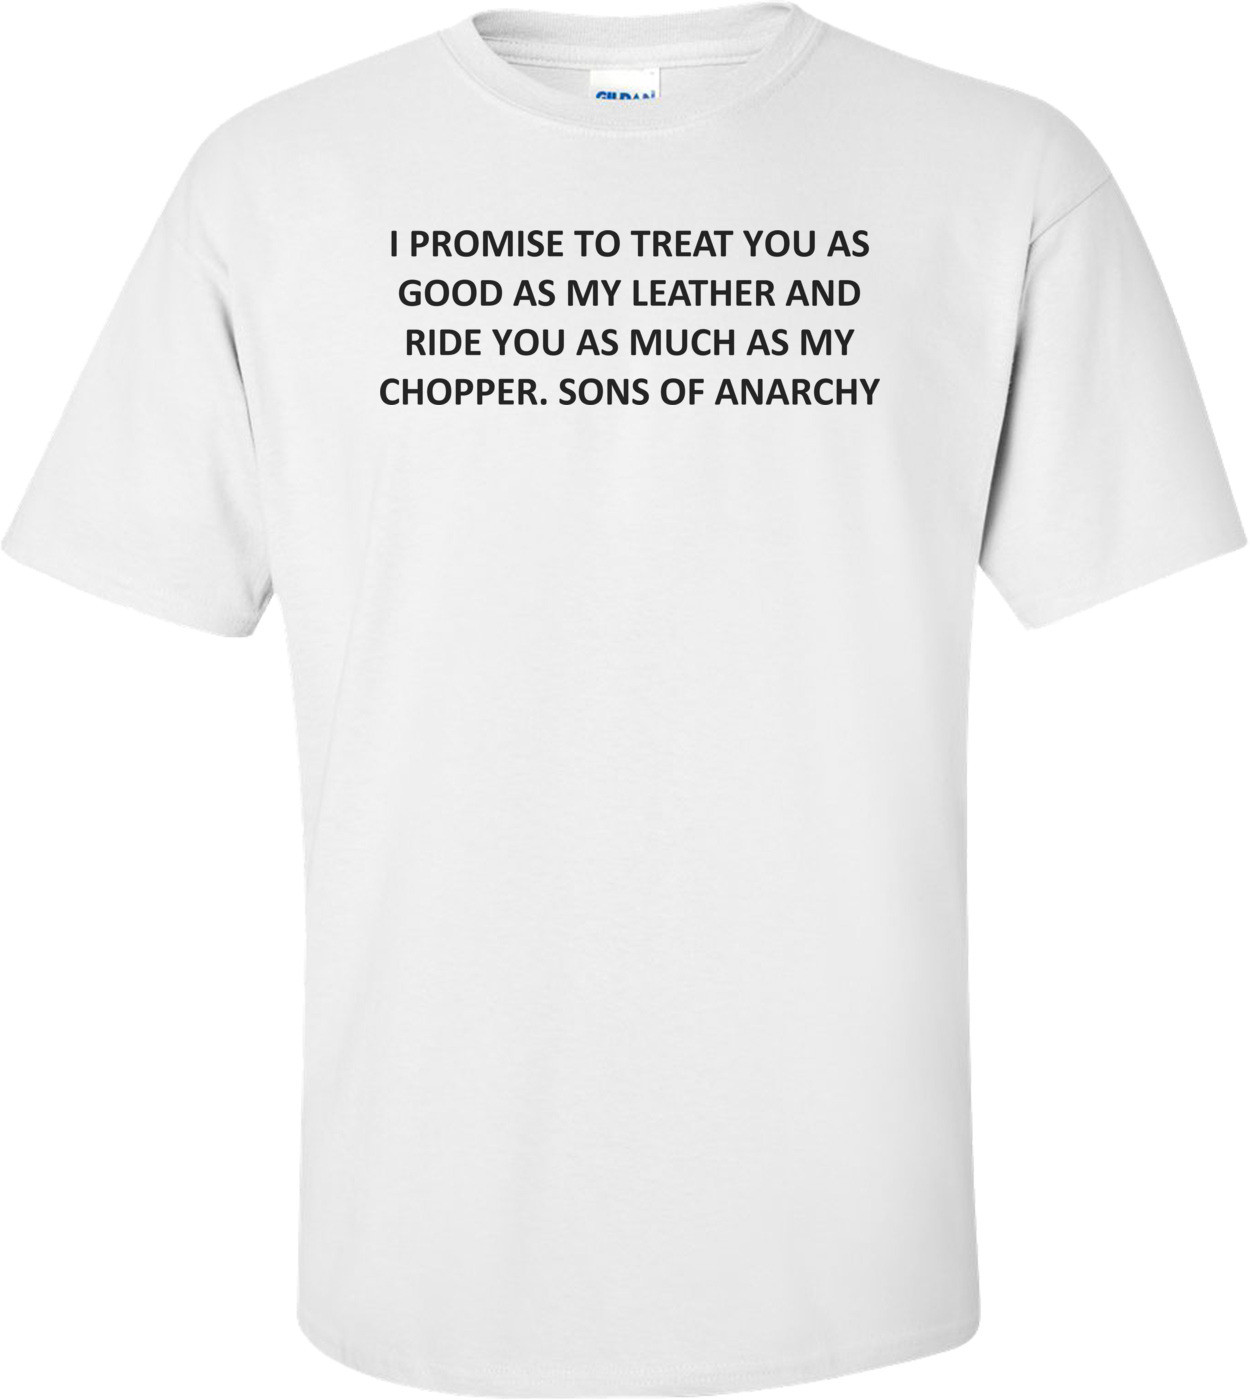 I PROMISE TO TREAT YOU AS GOOD AS MY LEATHER AND RIDE YOU AS MUCH AS MY CHOPPER. SONS OF ANARCHY Shirt